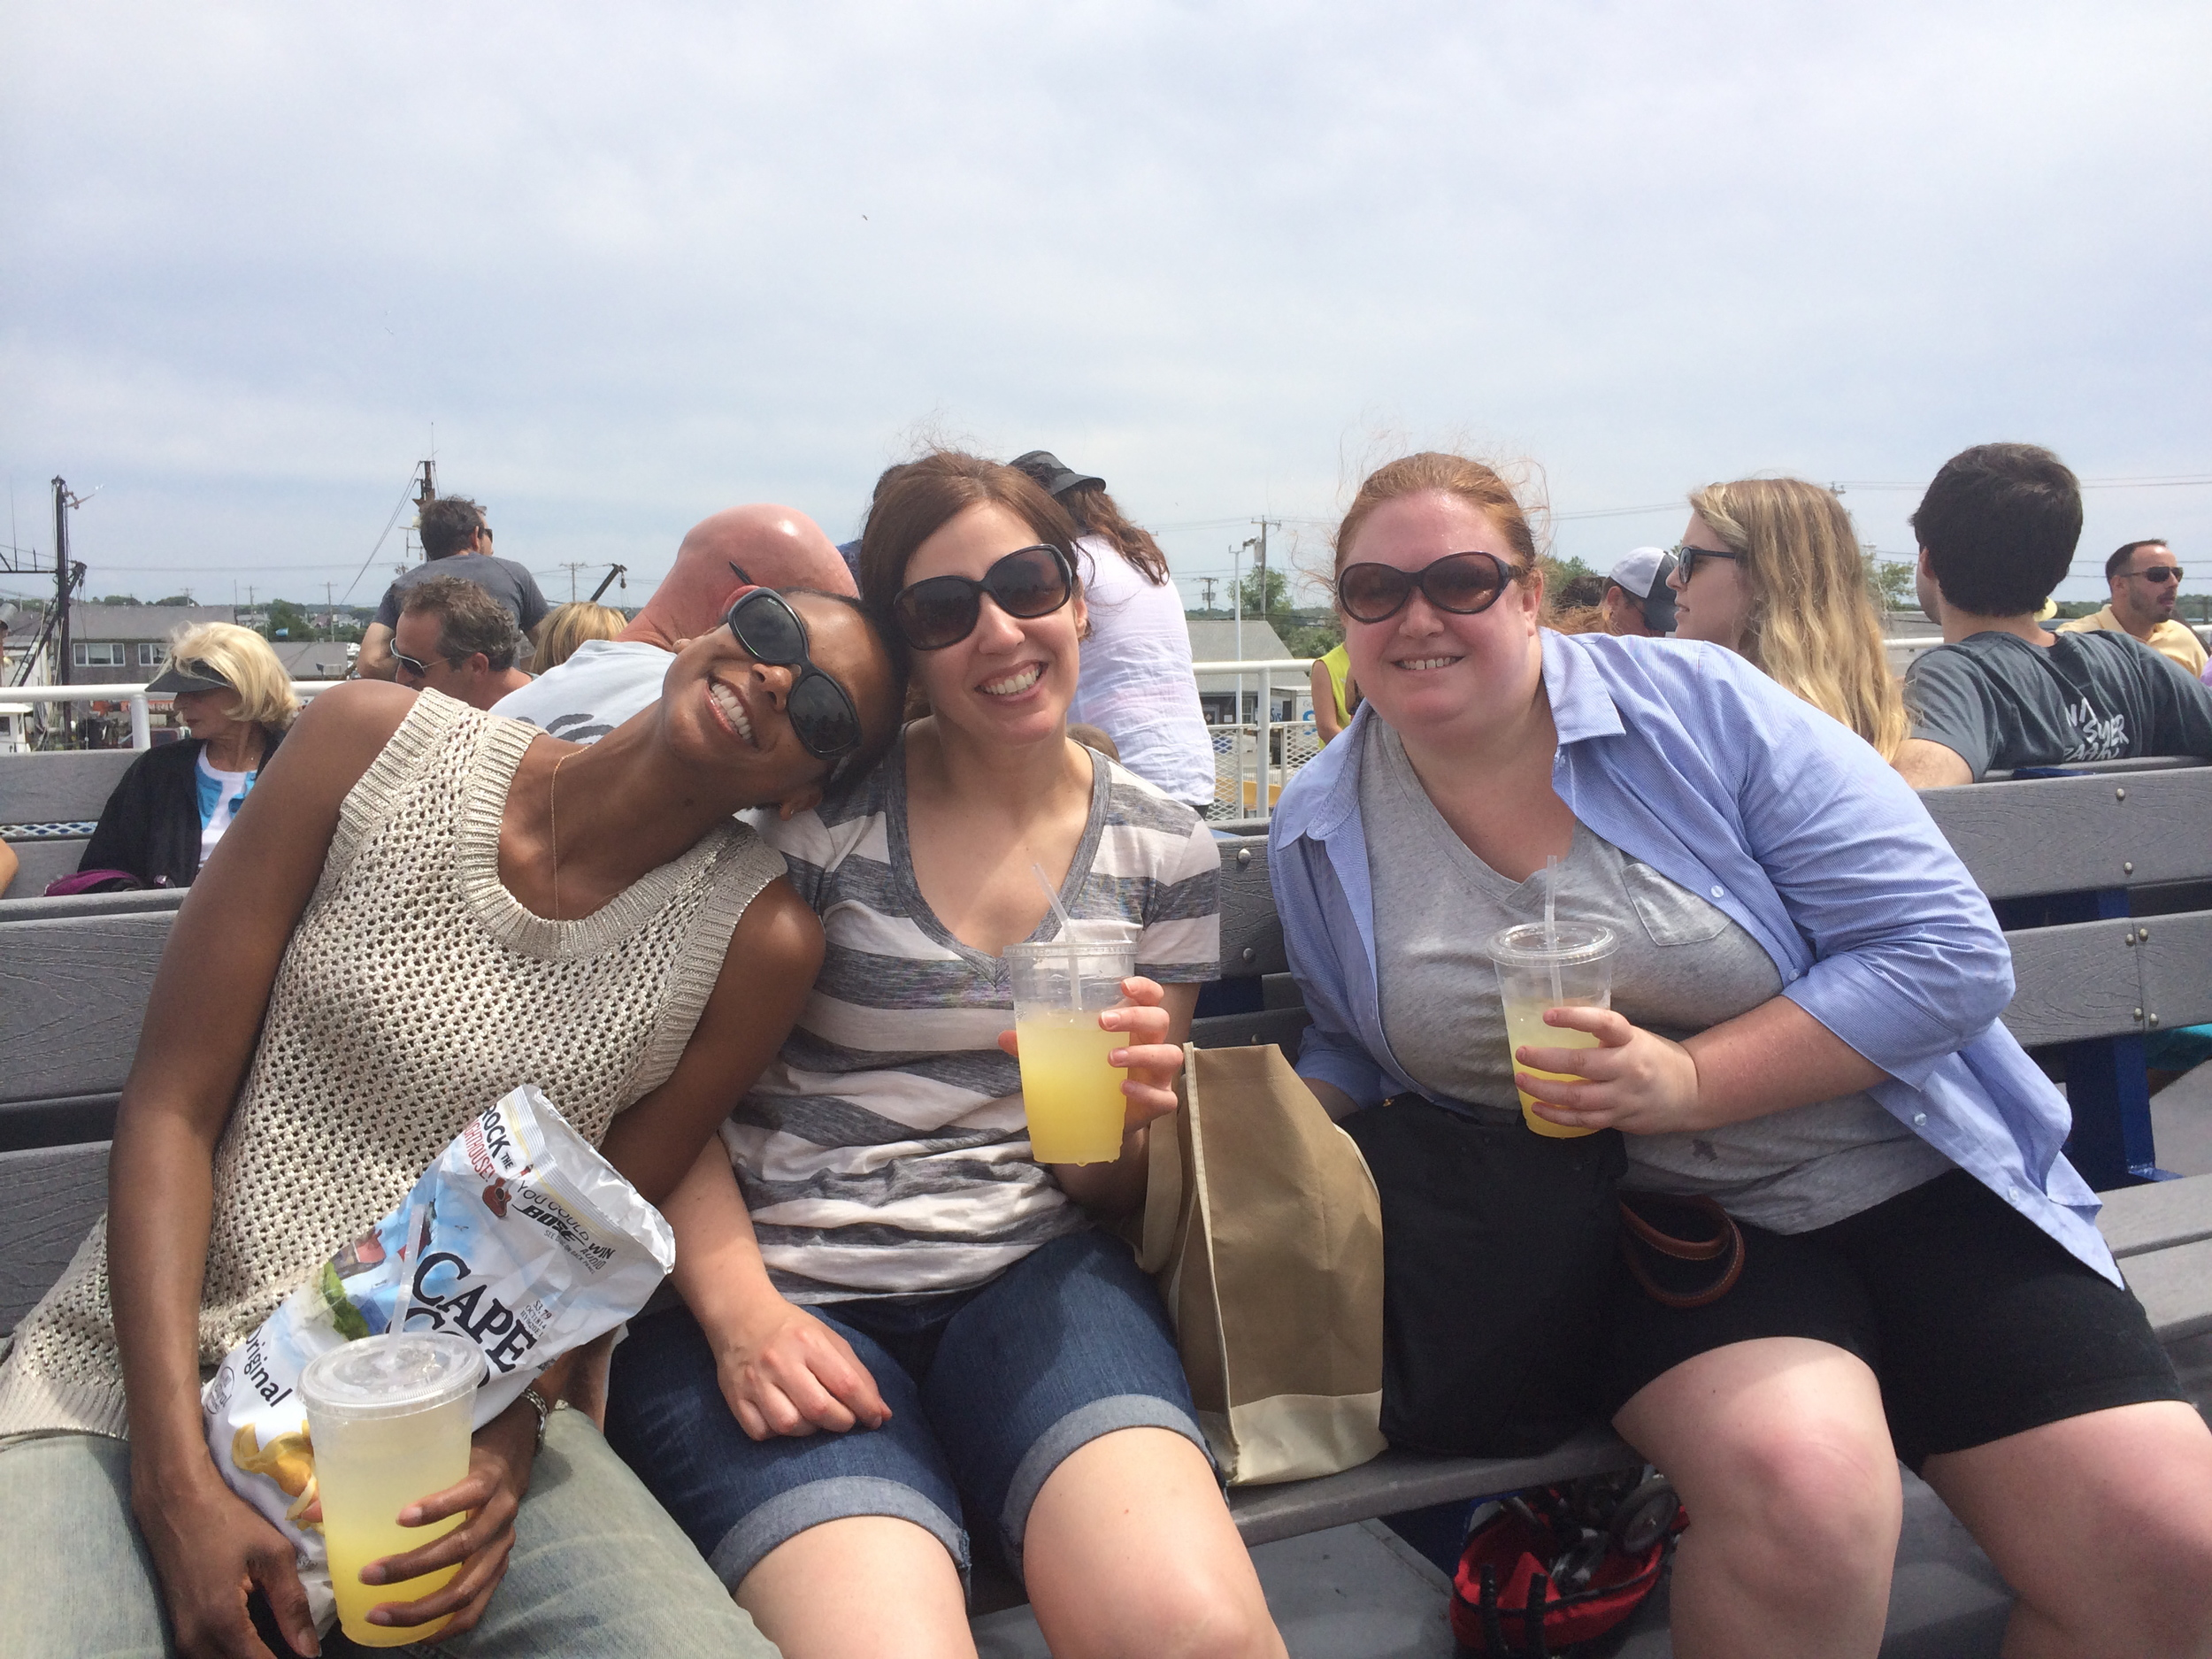 A little ferry fun on the Block Island ferry w a pair of my favorite lady lions.